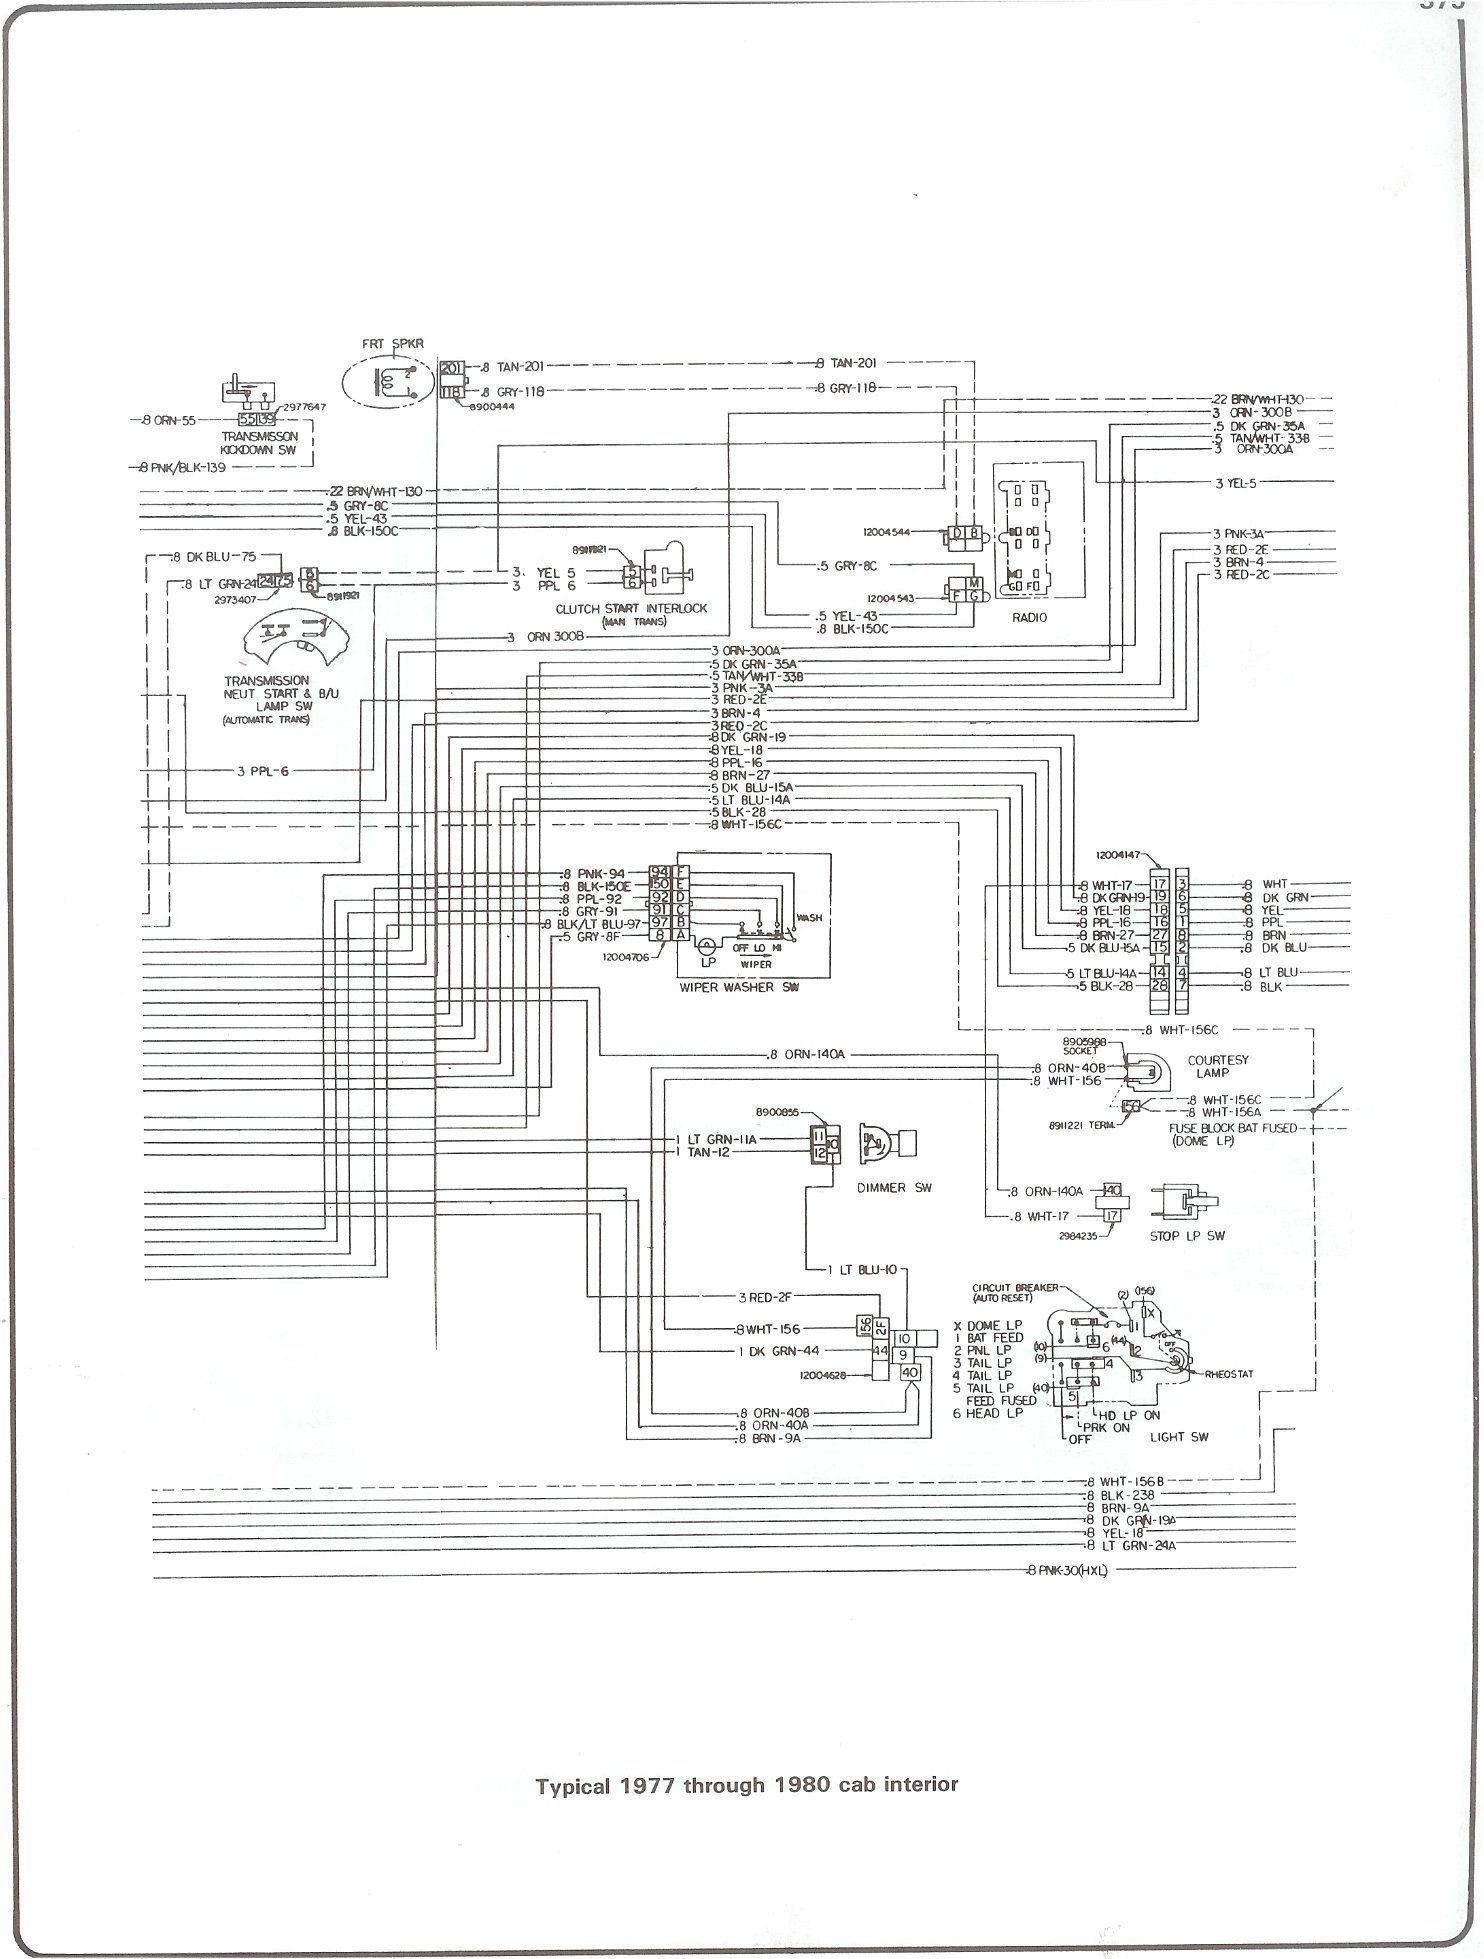 77 80_cab_inter complete 73 87 wiring diagrams 1978 GMC Sierra at gsmportal.co